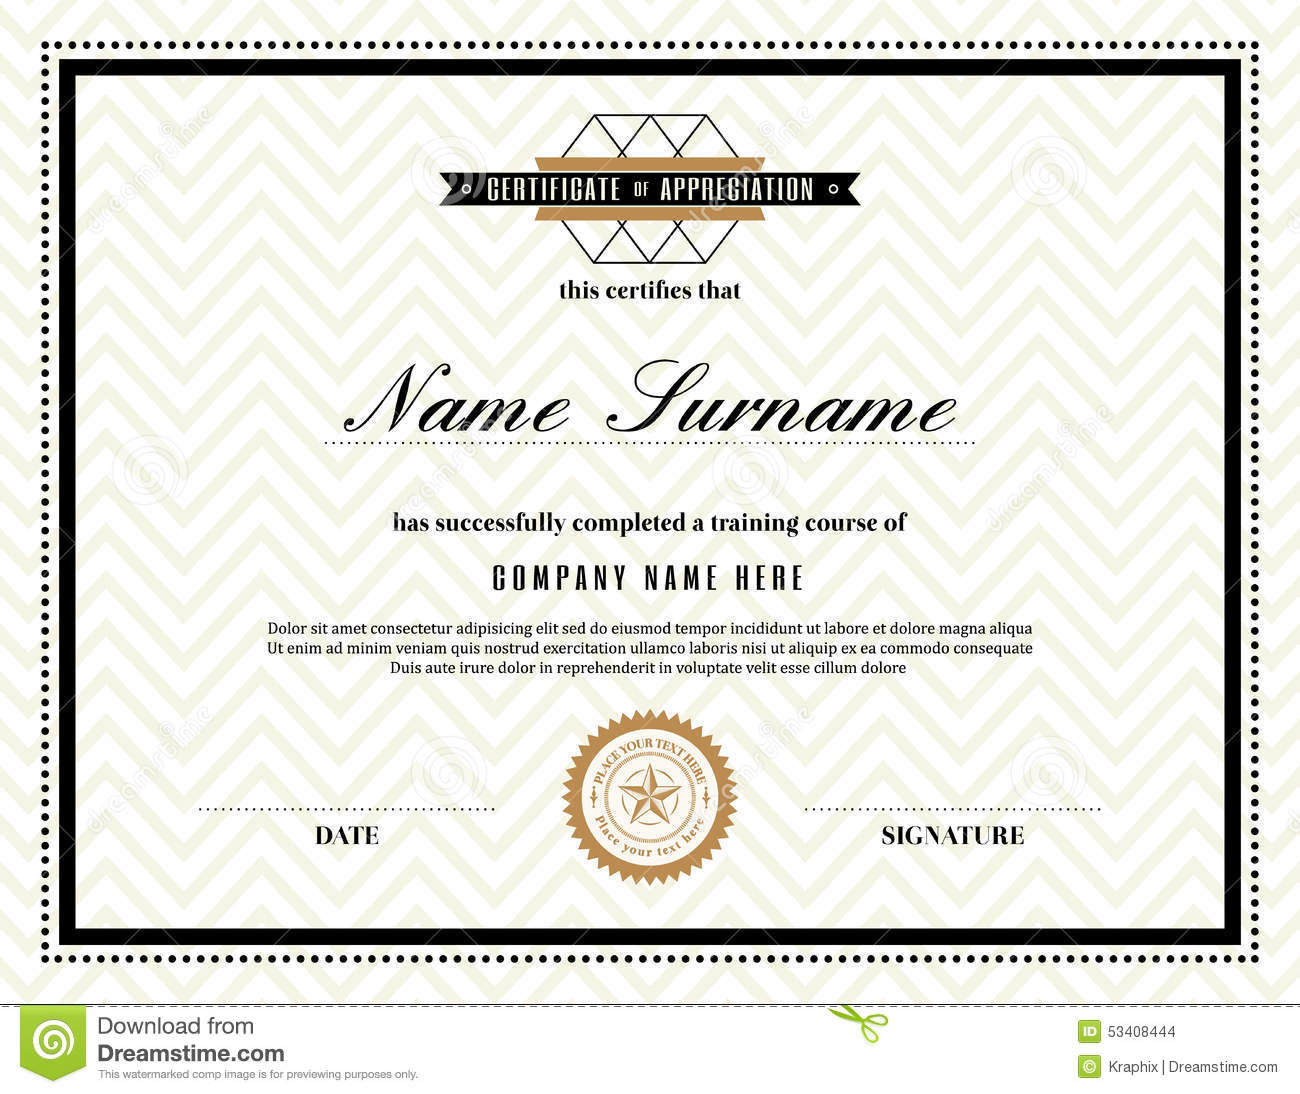 Retro frame certificate of appreciation template stock vector retro frame certificate of appreciation template xflitez Choice Image